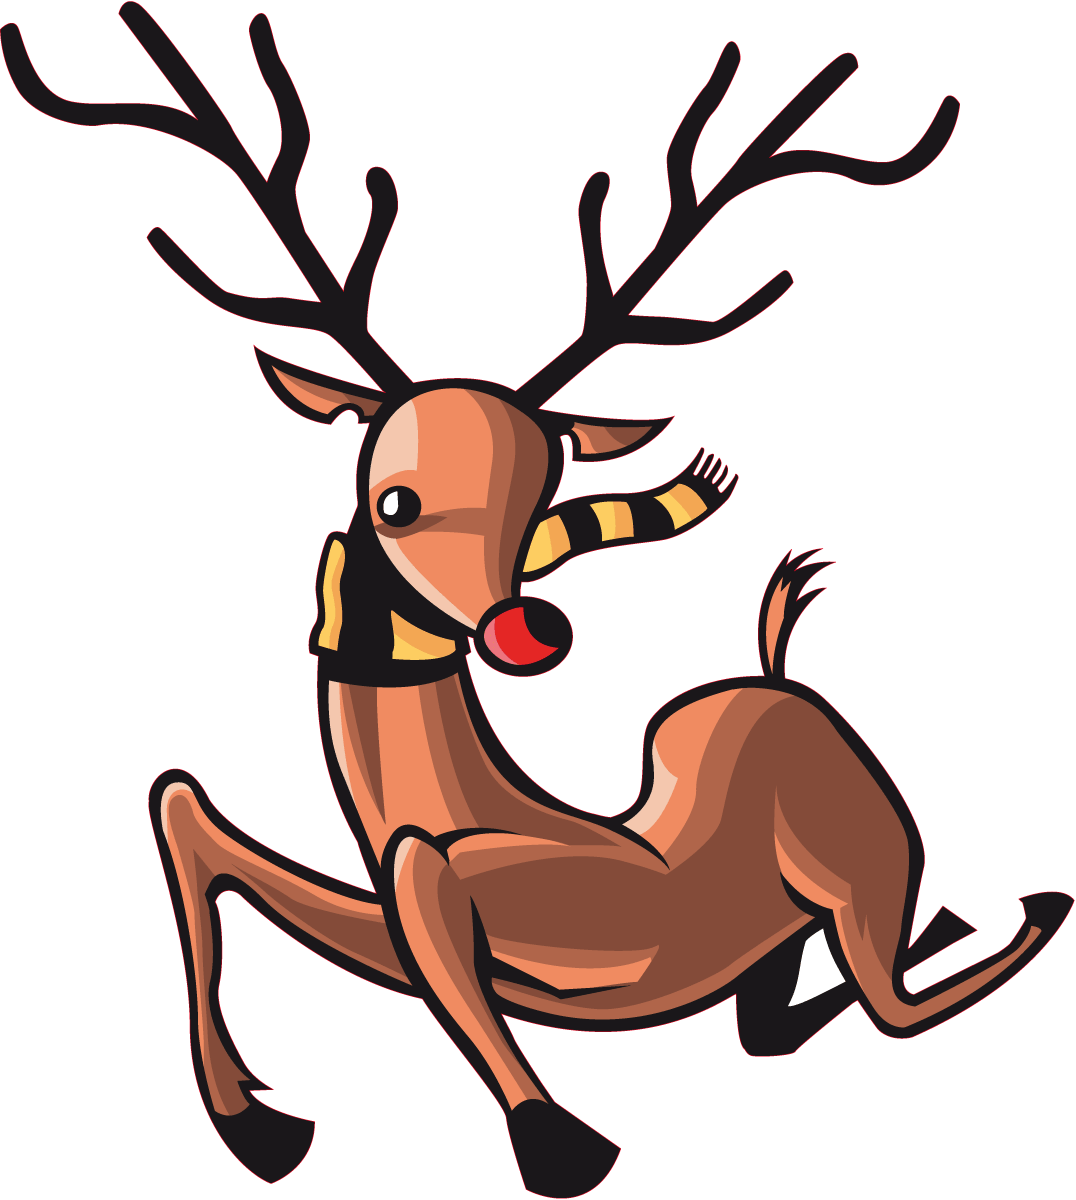 Wandtattoos: Rudolph color